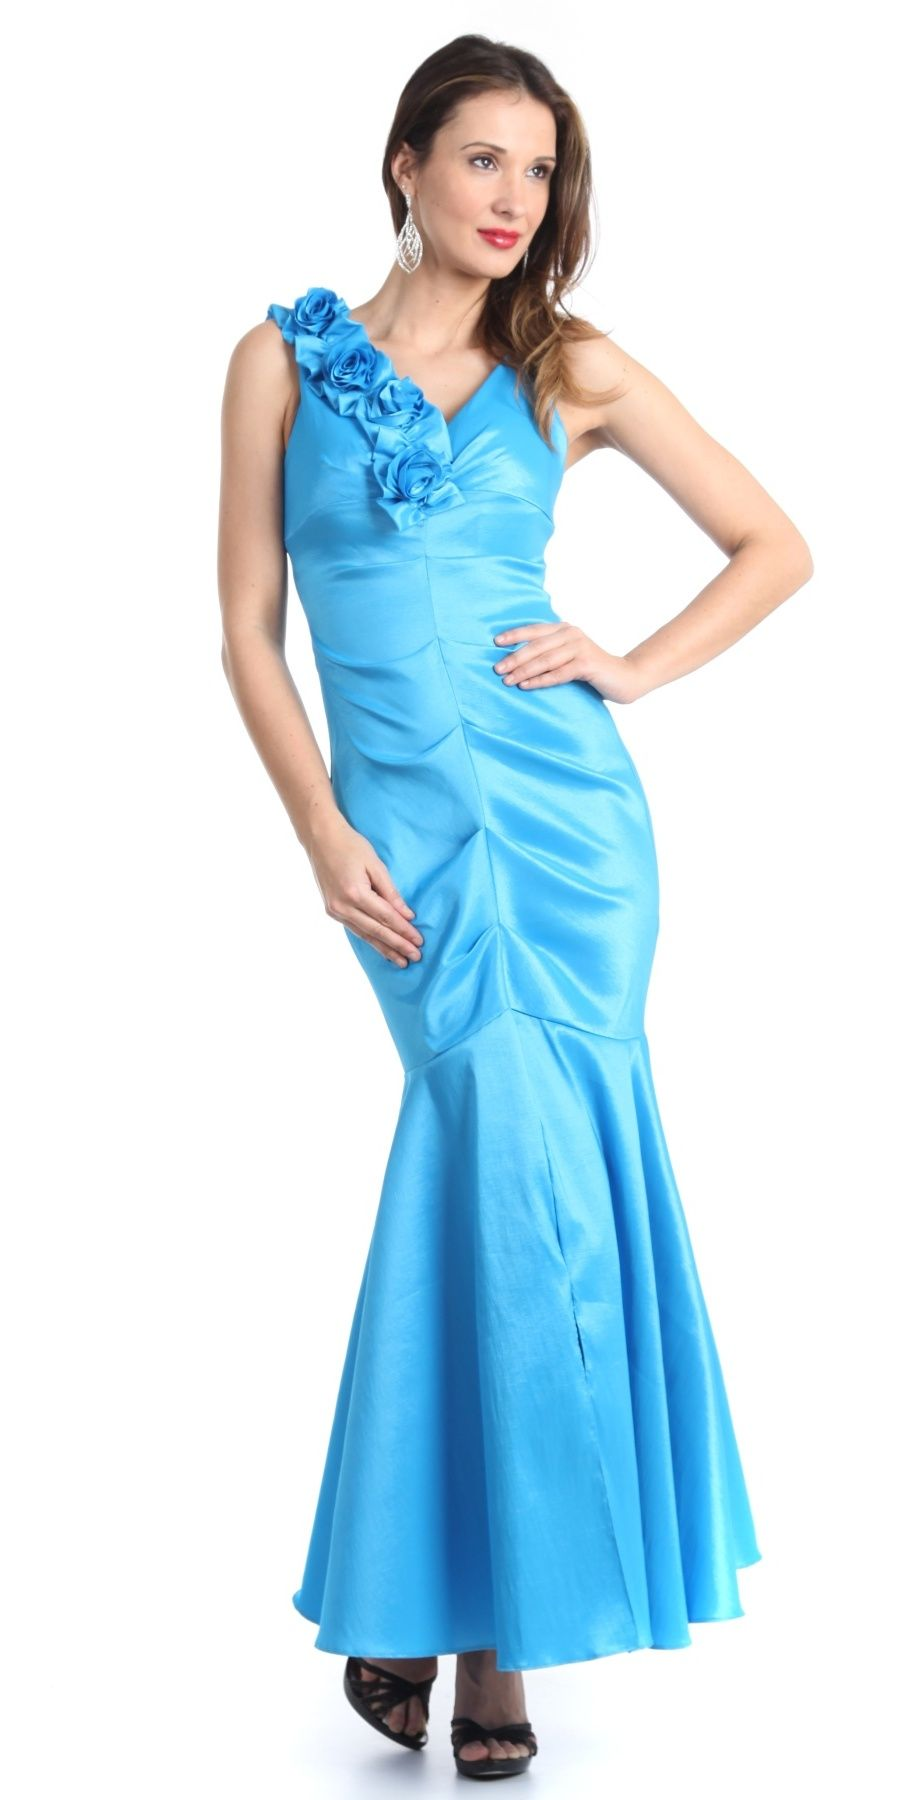 Mermaid Gown Turquoise Dress Long Satin Flower Strap Flaired Skirt ...